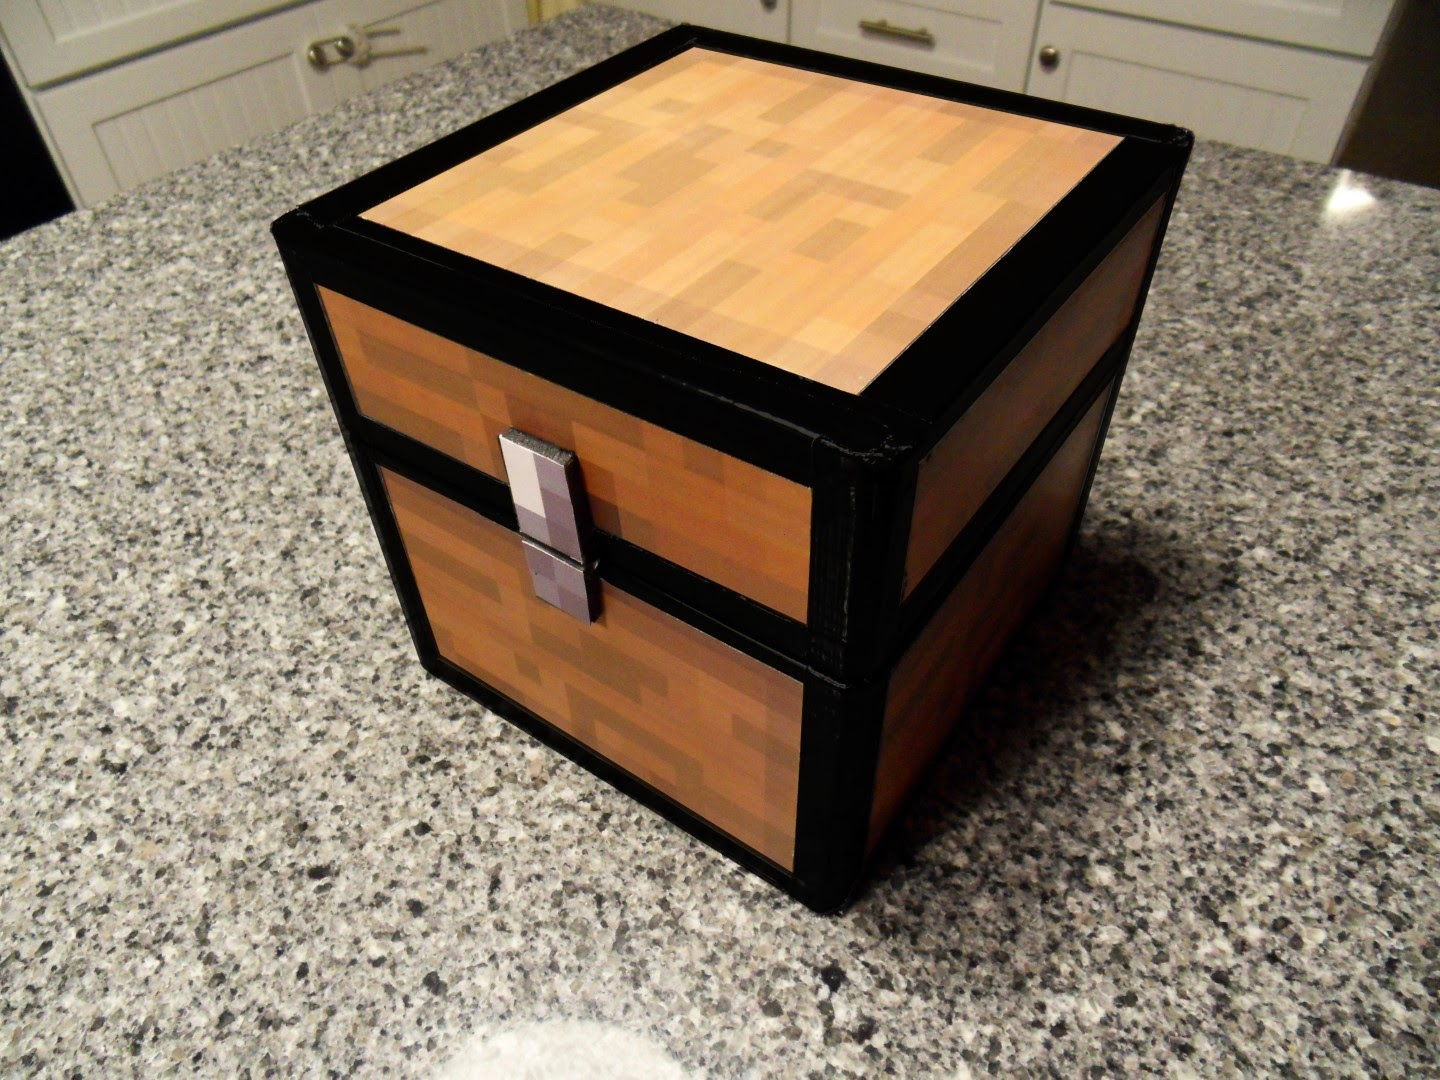 diy minecraft block cube gregoryd